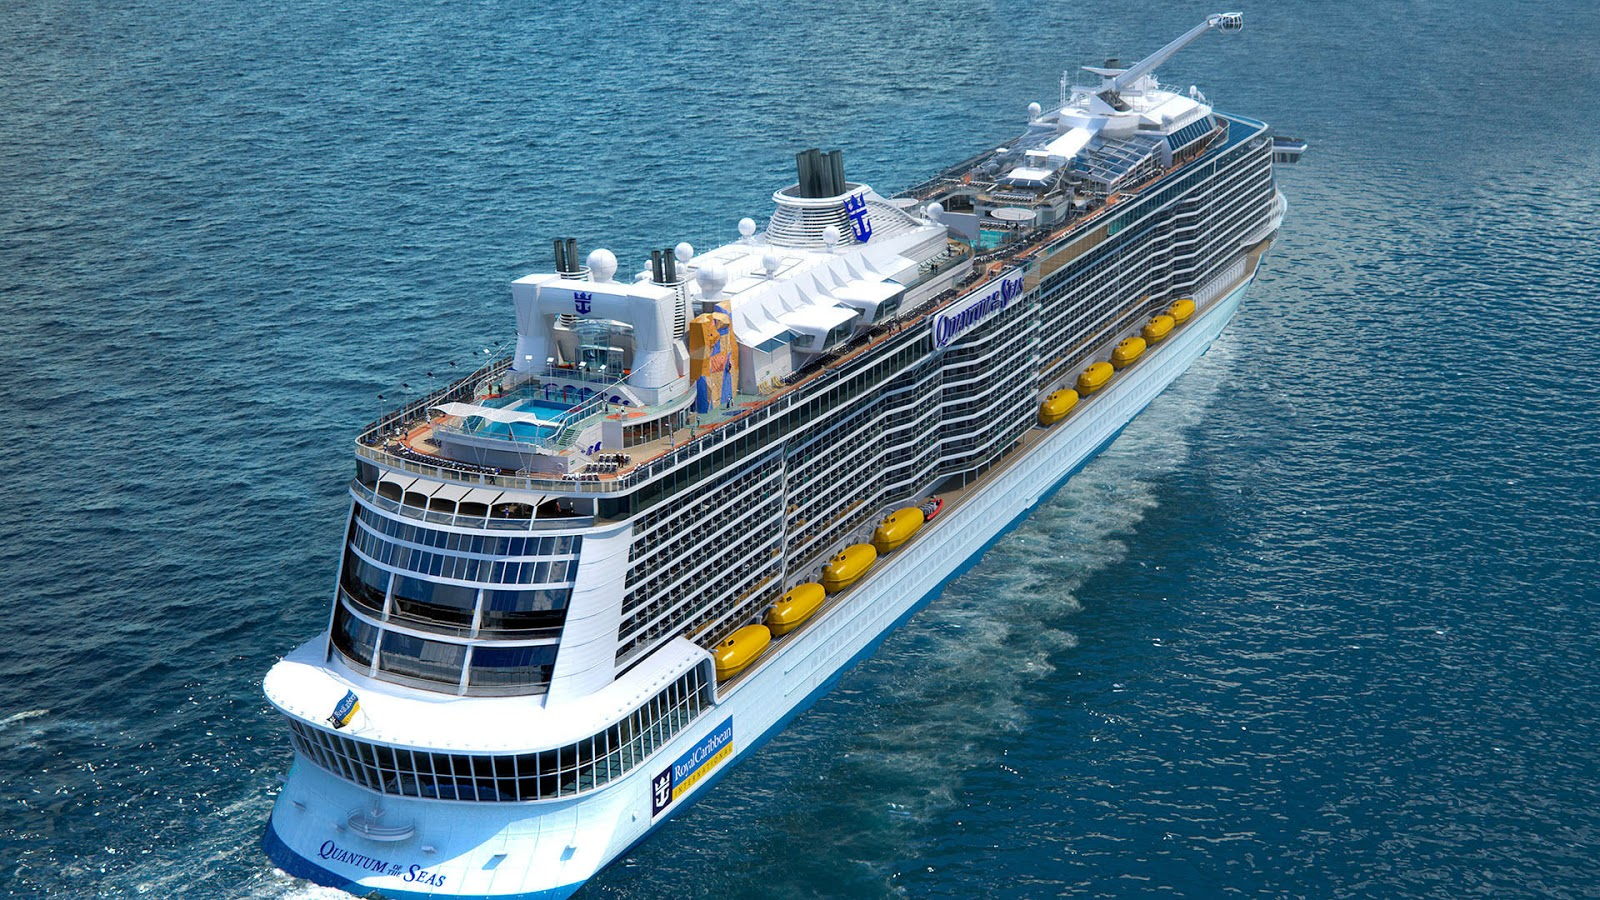 Richard39s Cruise Ramble Royal Caribbean Annouce Their New